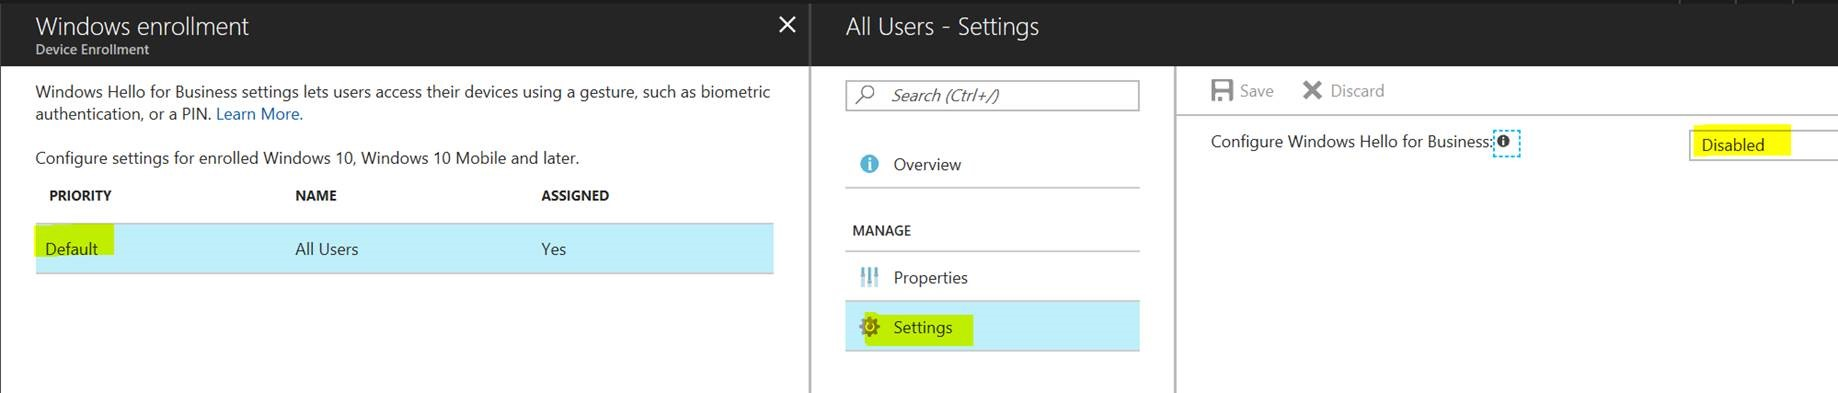 Azure AD - Intune - Windows Hello for Business - Workplace